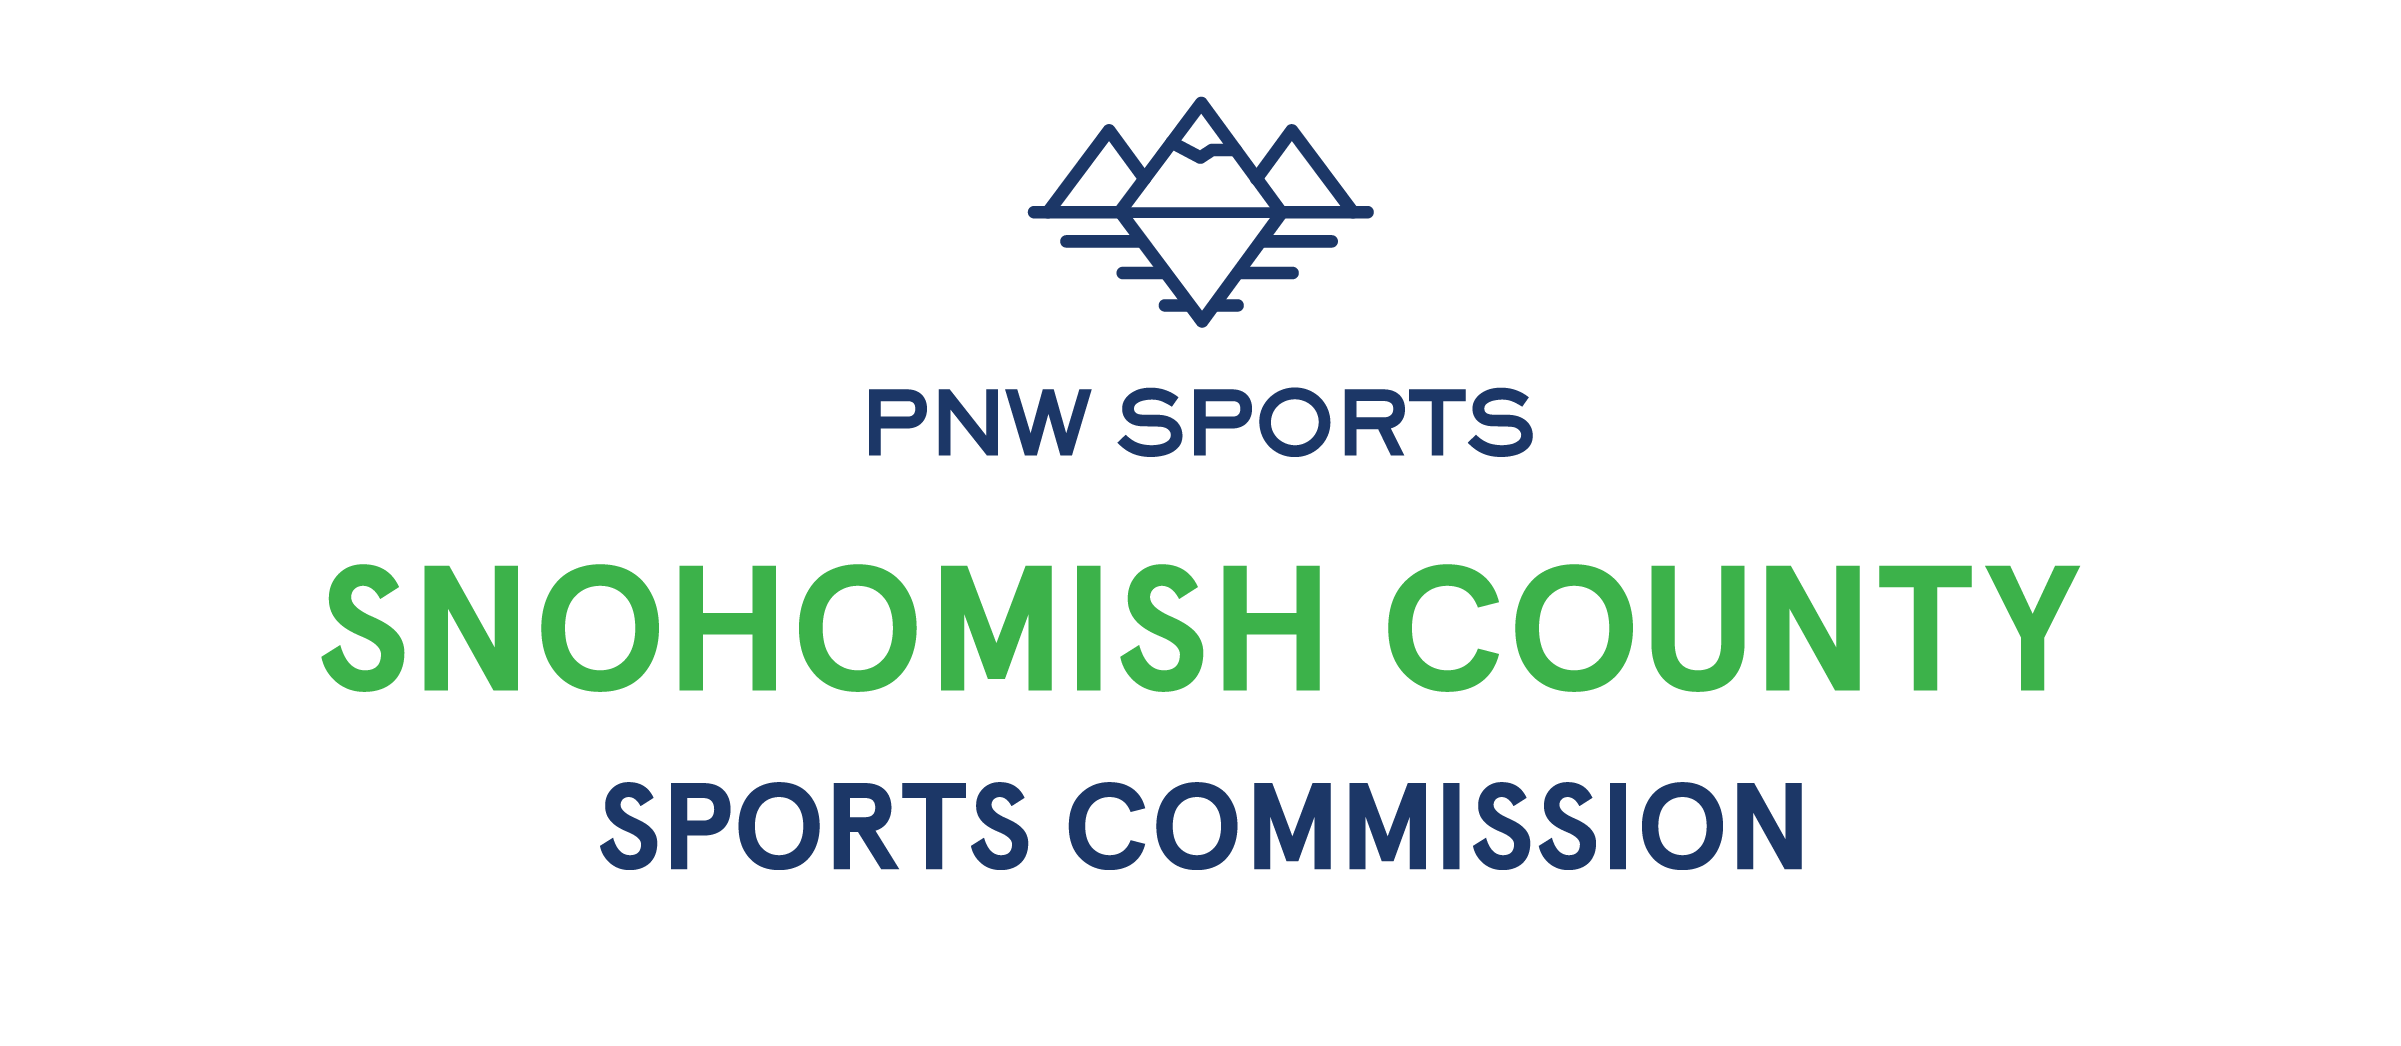 Snohomish County Sports Commission logo